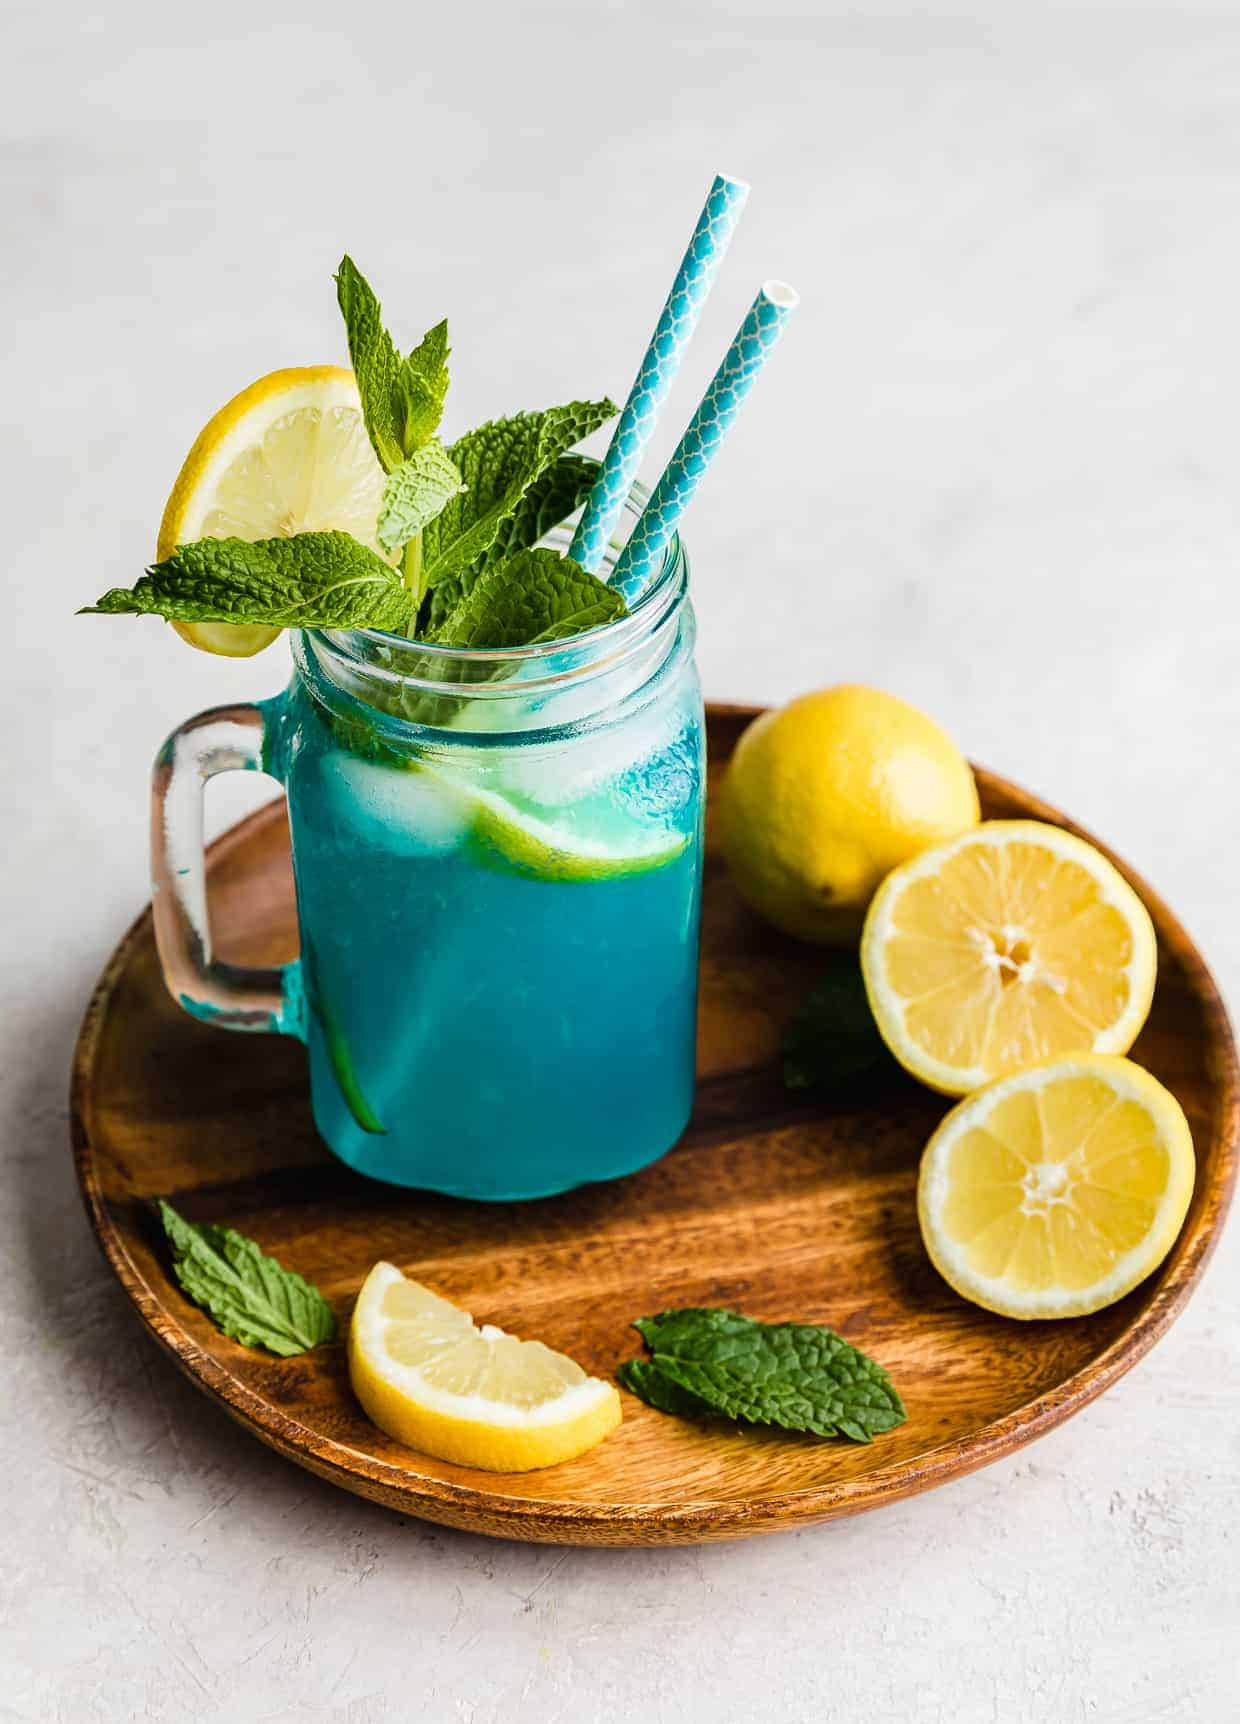 Blue Raspberry Lemonade in a glass cup on a brown plate surrounded by sliced lemons.